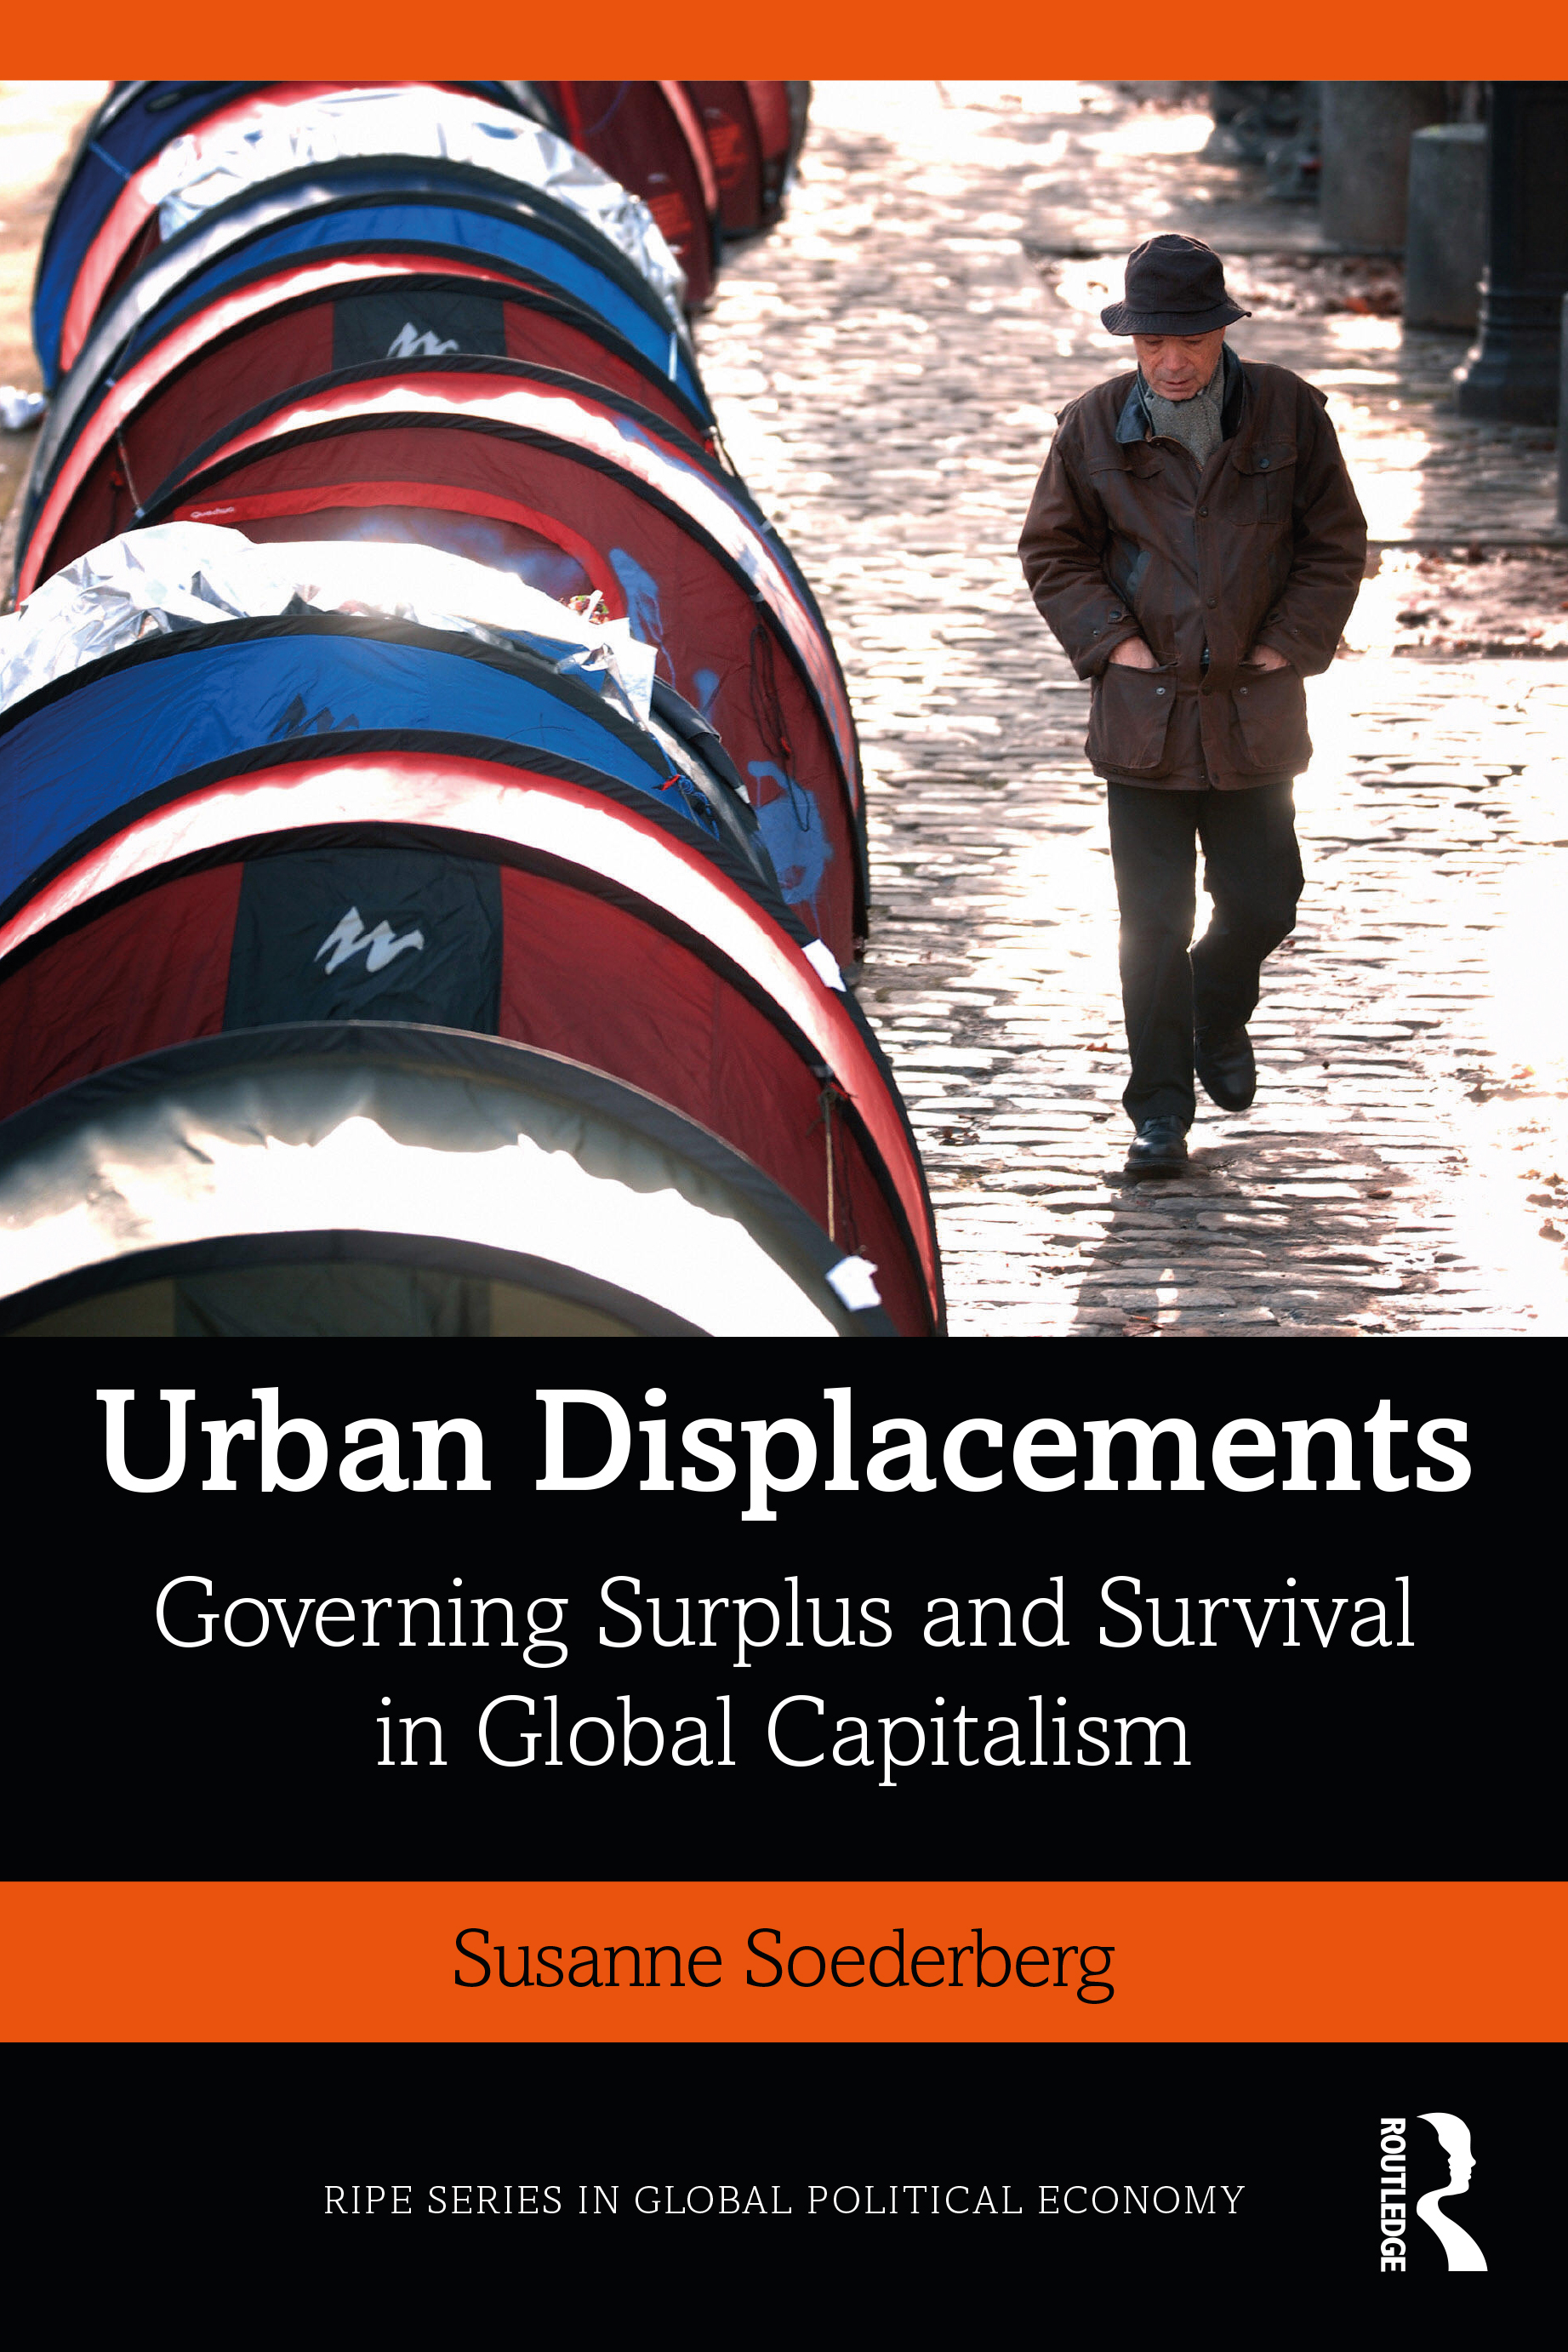 Displaced survival in a housing model